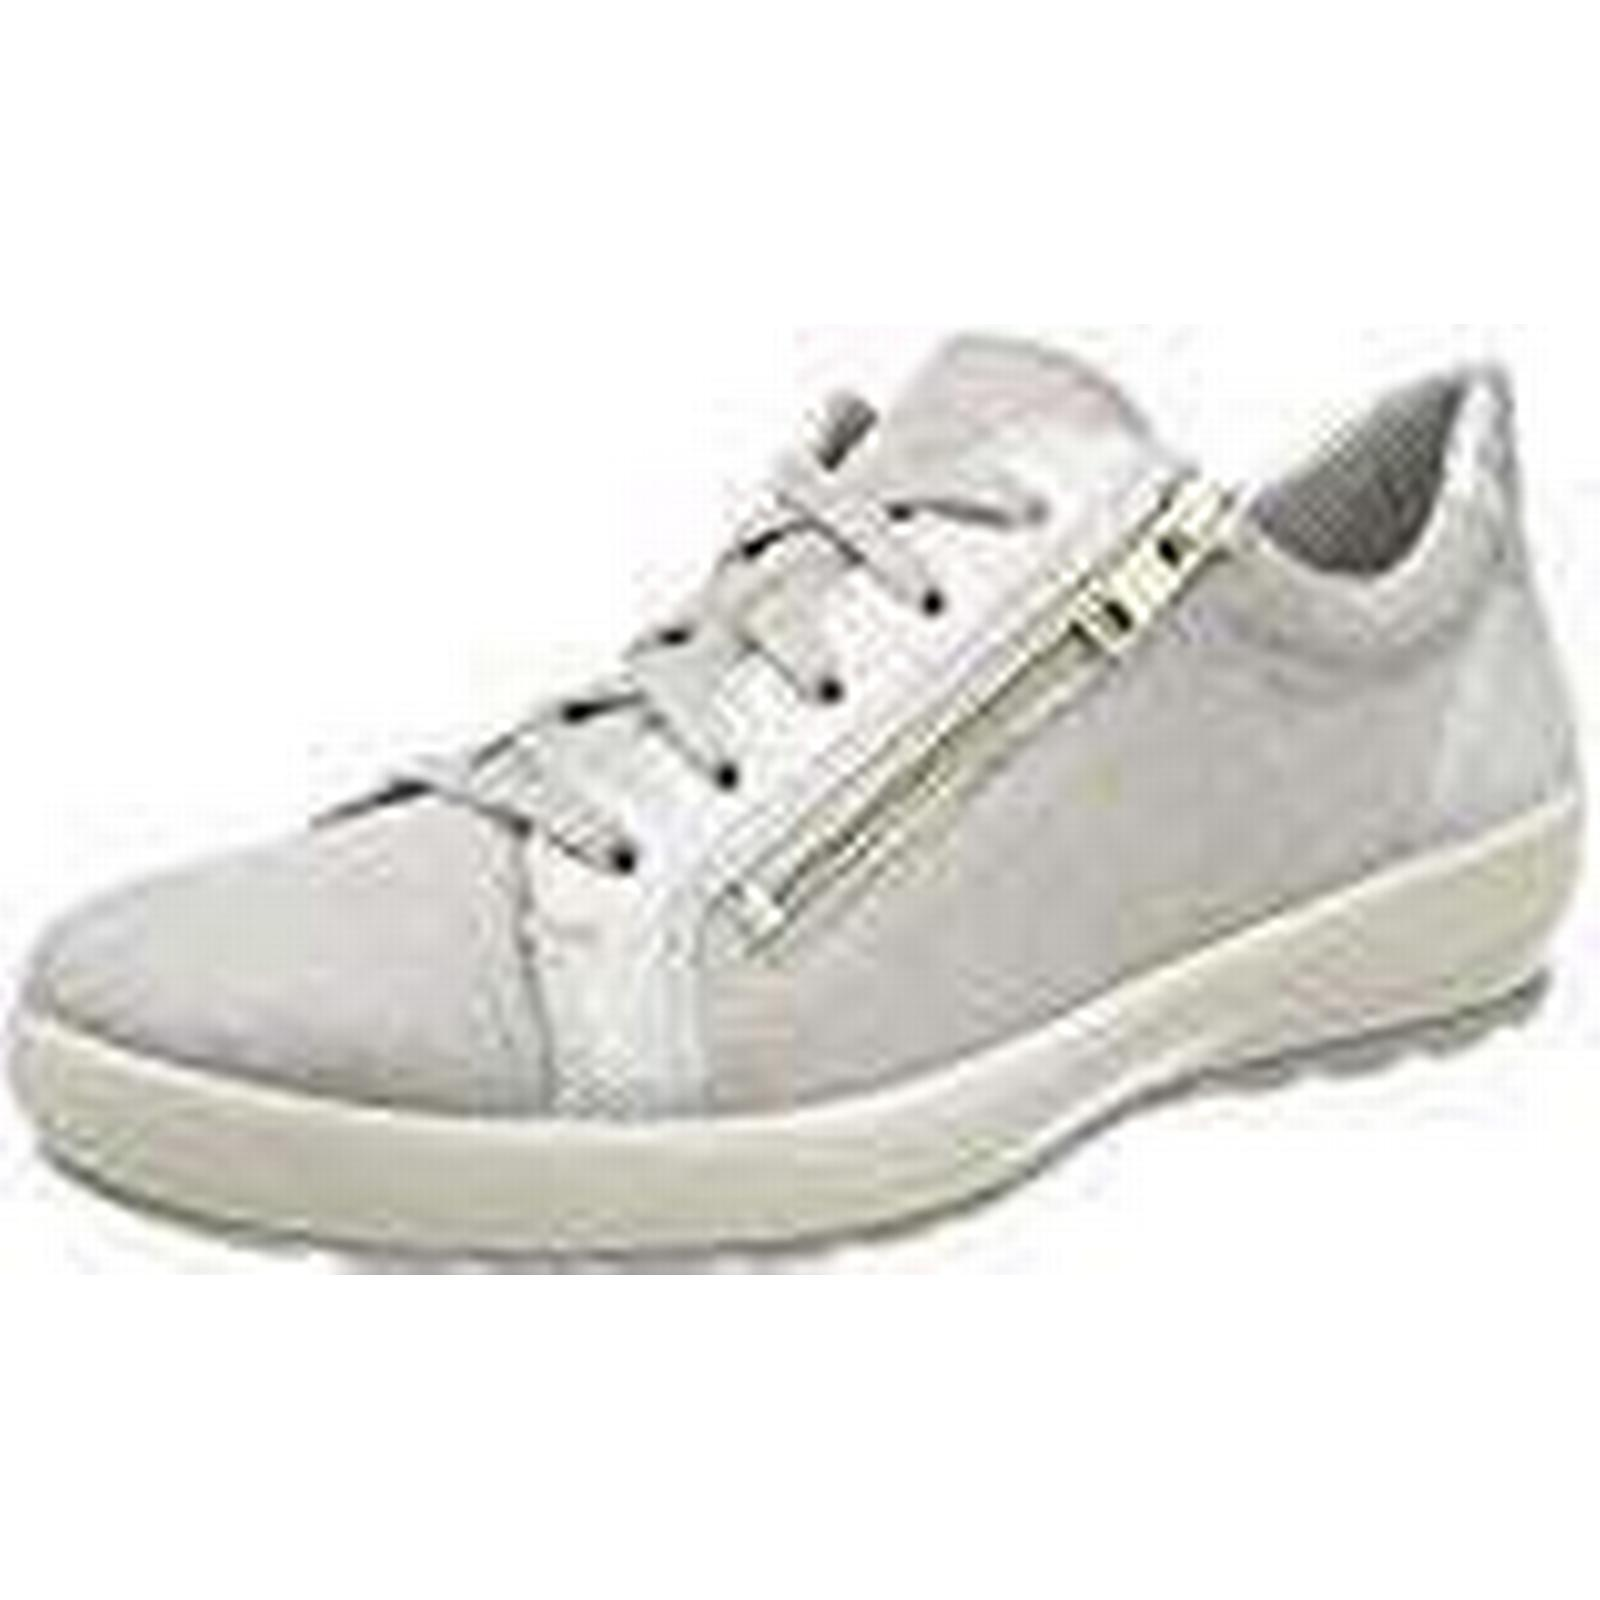 Legero Olbia, 6 Women's Low-Top, Gray (Alluminio), 6 Olbia, UK (39 EU) 9b18eb